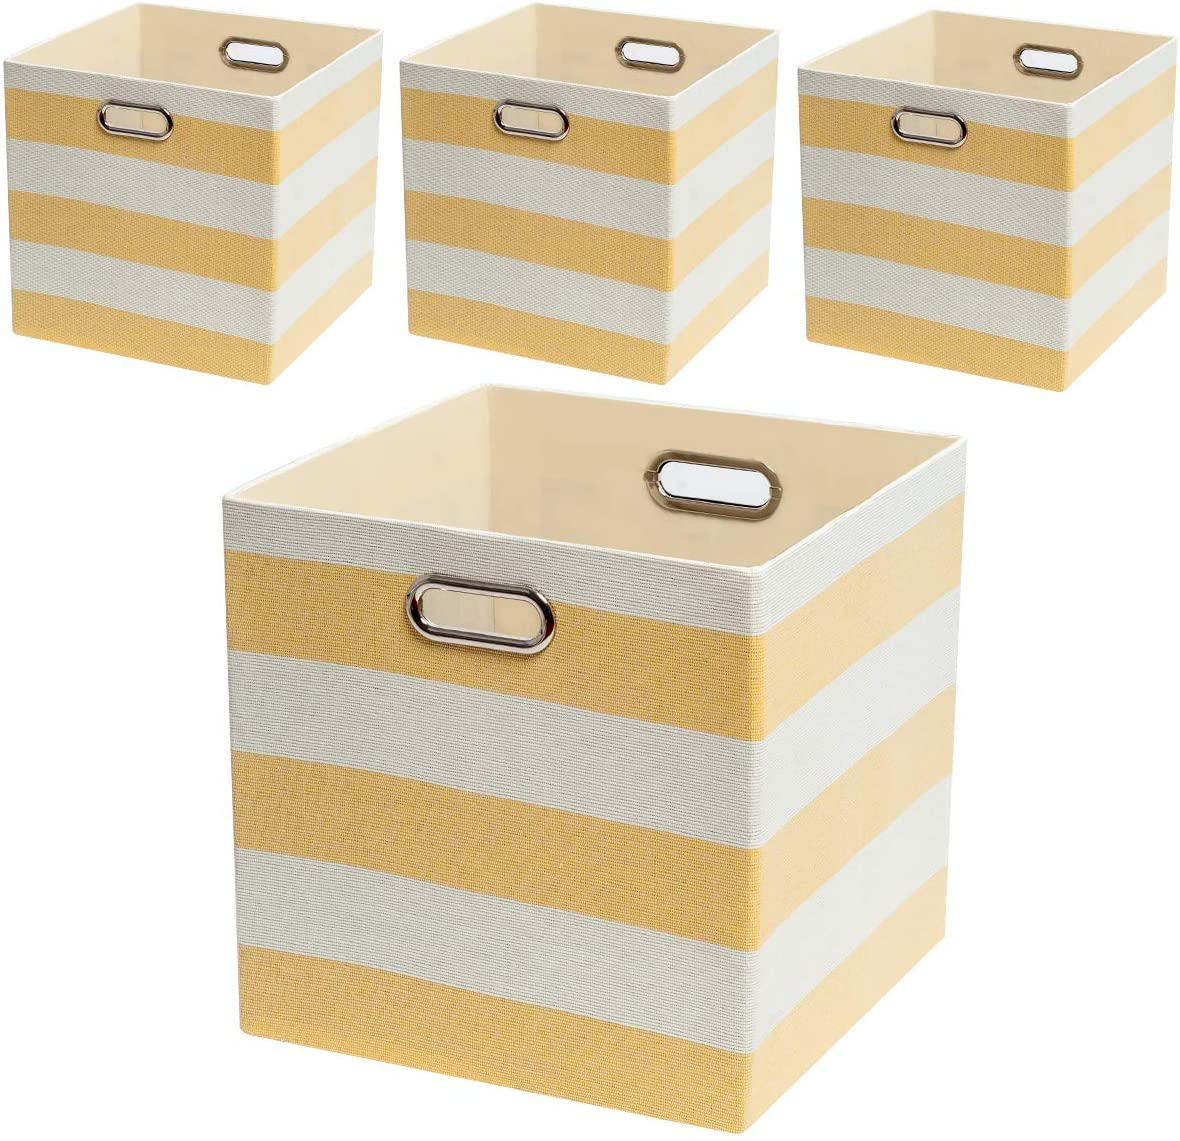 Posprica Collapsible Storage Cube Bins,13×13 Storage Boxes Basket Containers Fabric Drawers for Nurseries,Offices,Closets,Home Décor- 4pcs, Yellow Stripes